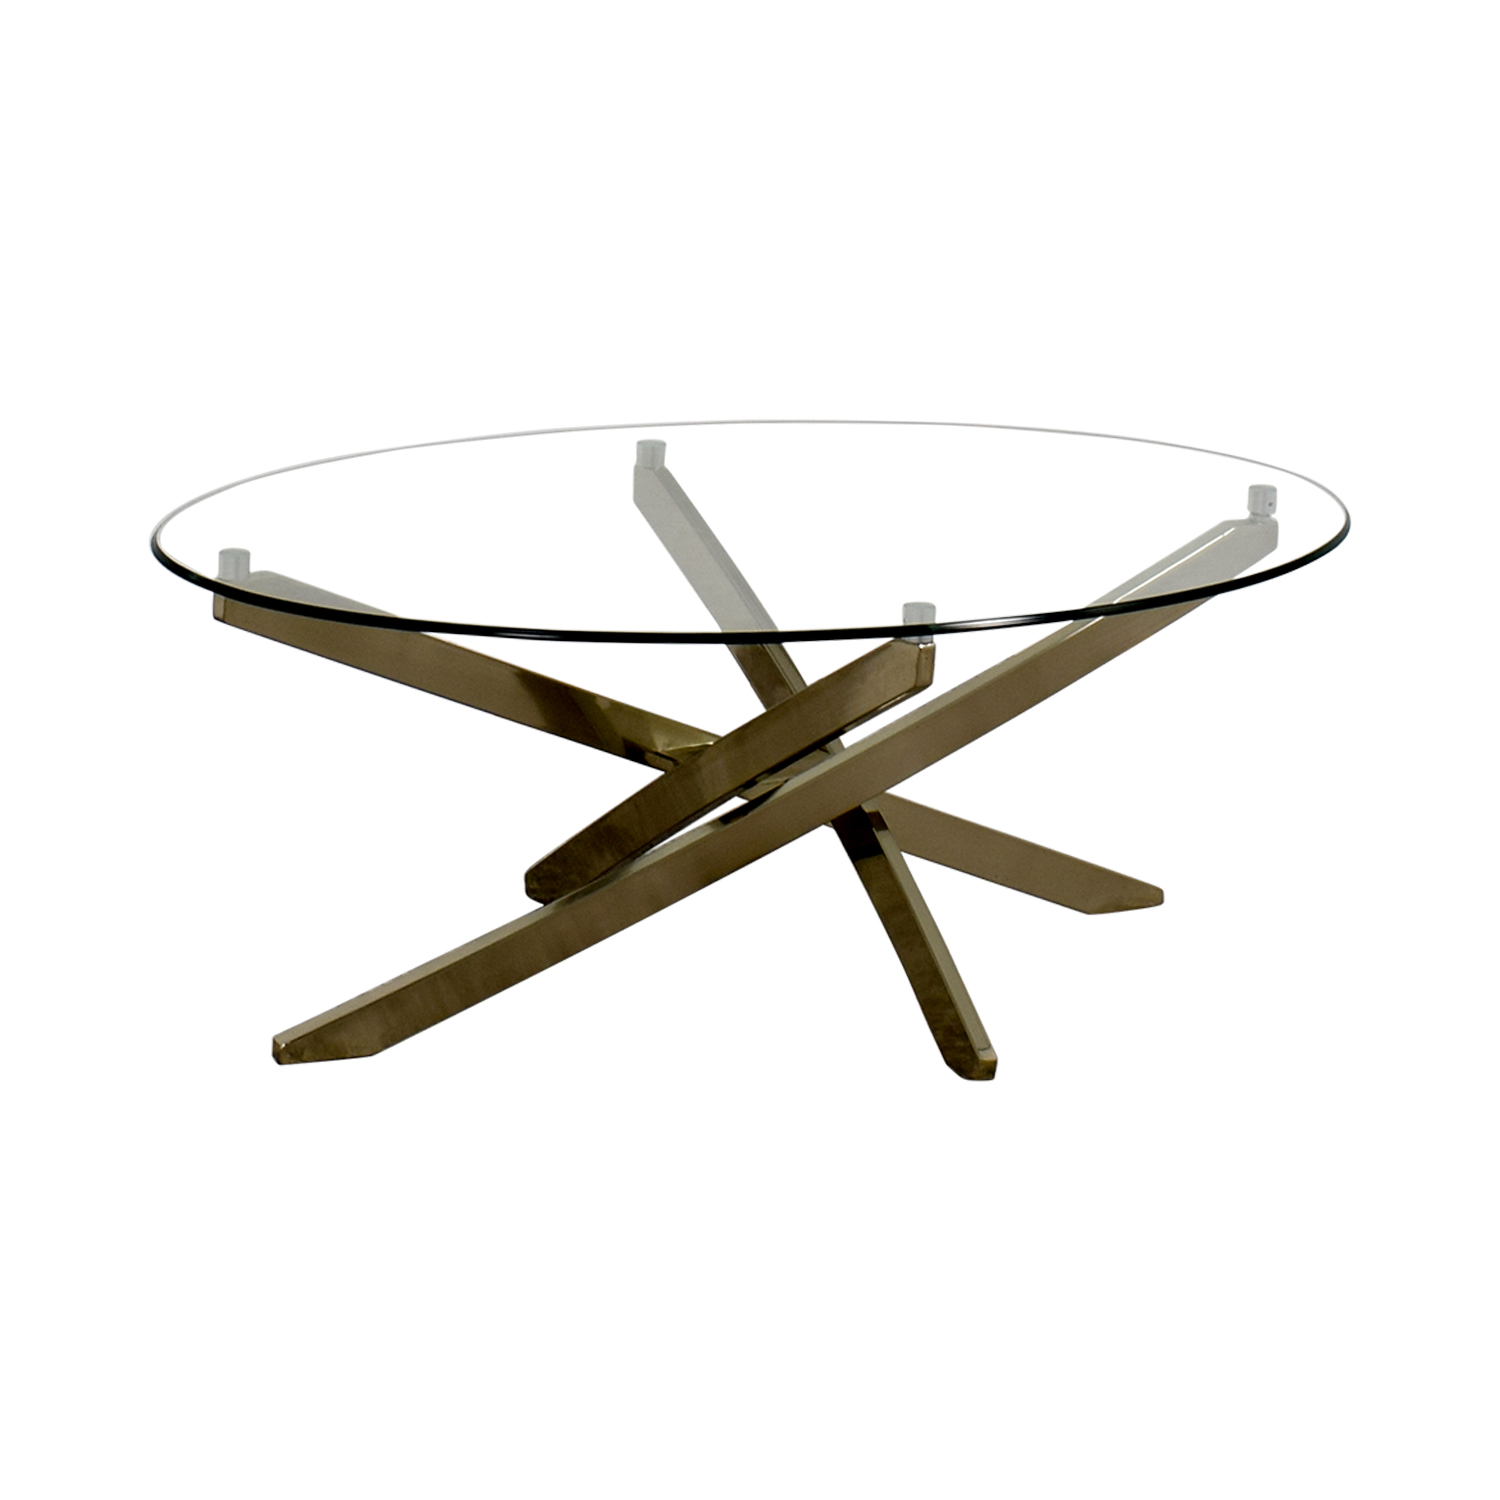 Raymour & Flanigan Zila Glass and Chrome Coffee Table / Coffee Tables